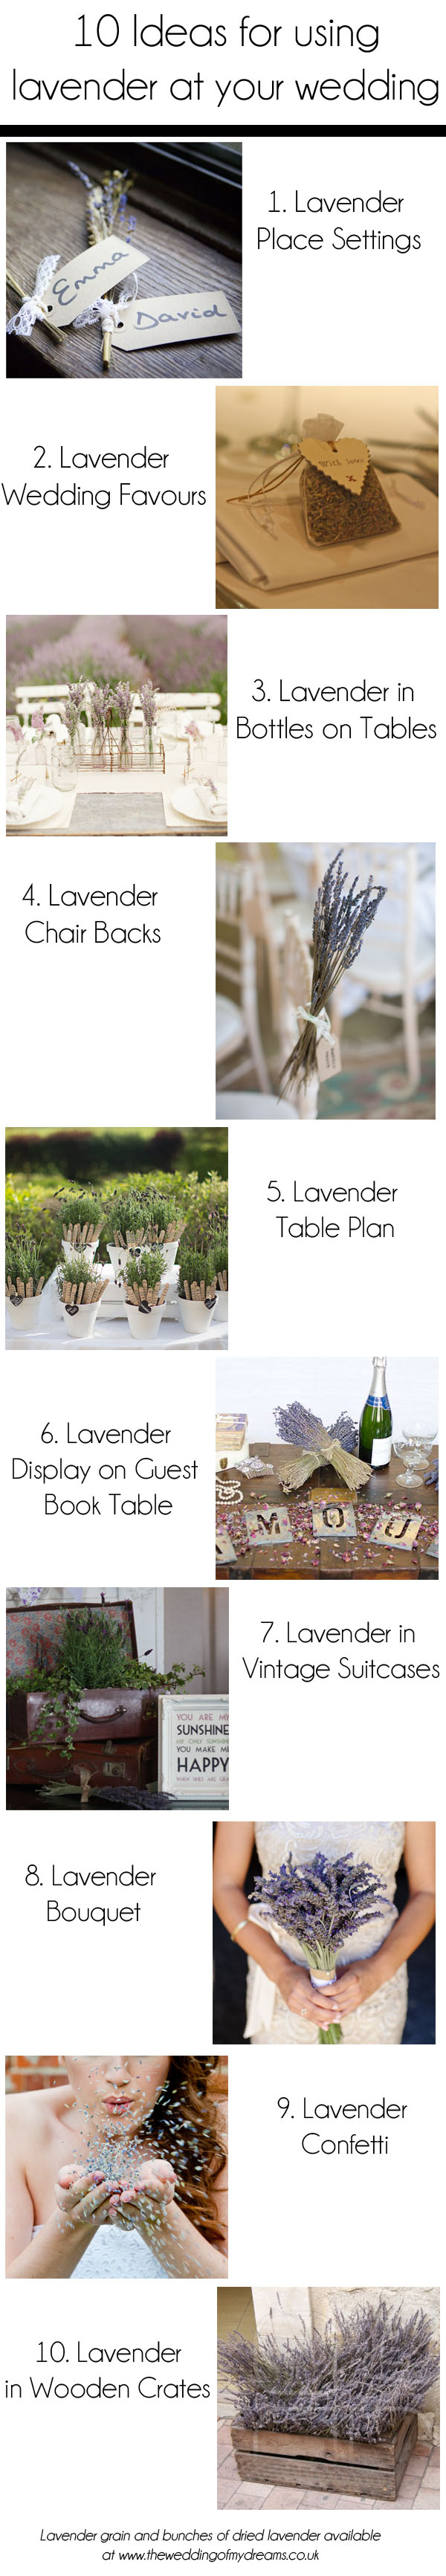 10 ideas for using lavender at your wedding